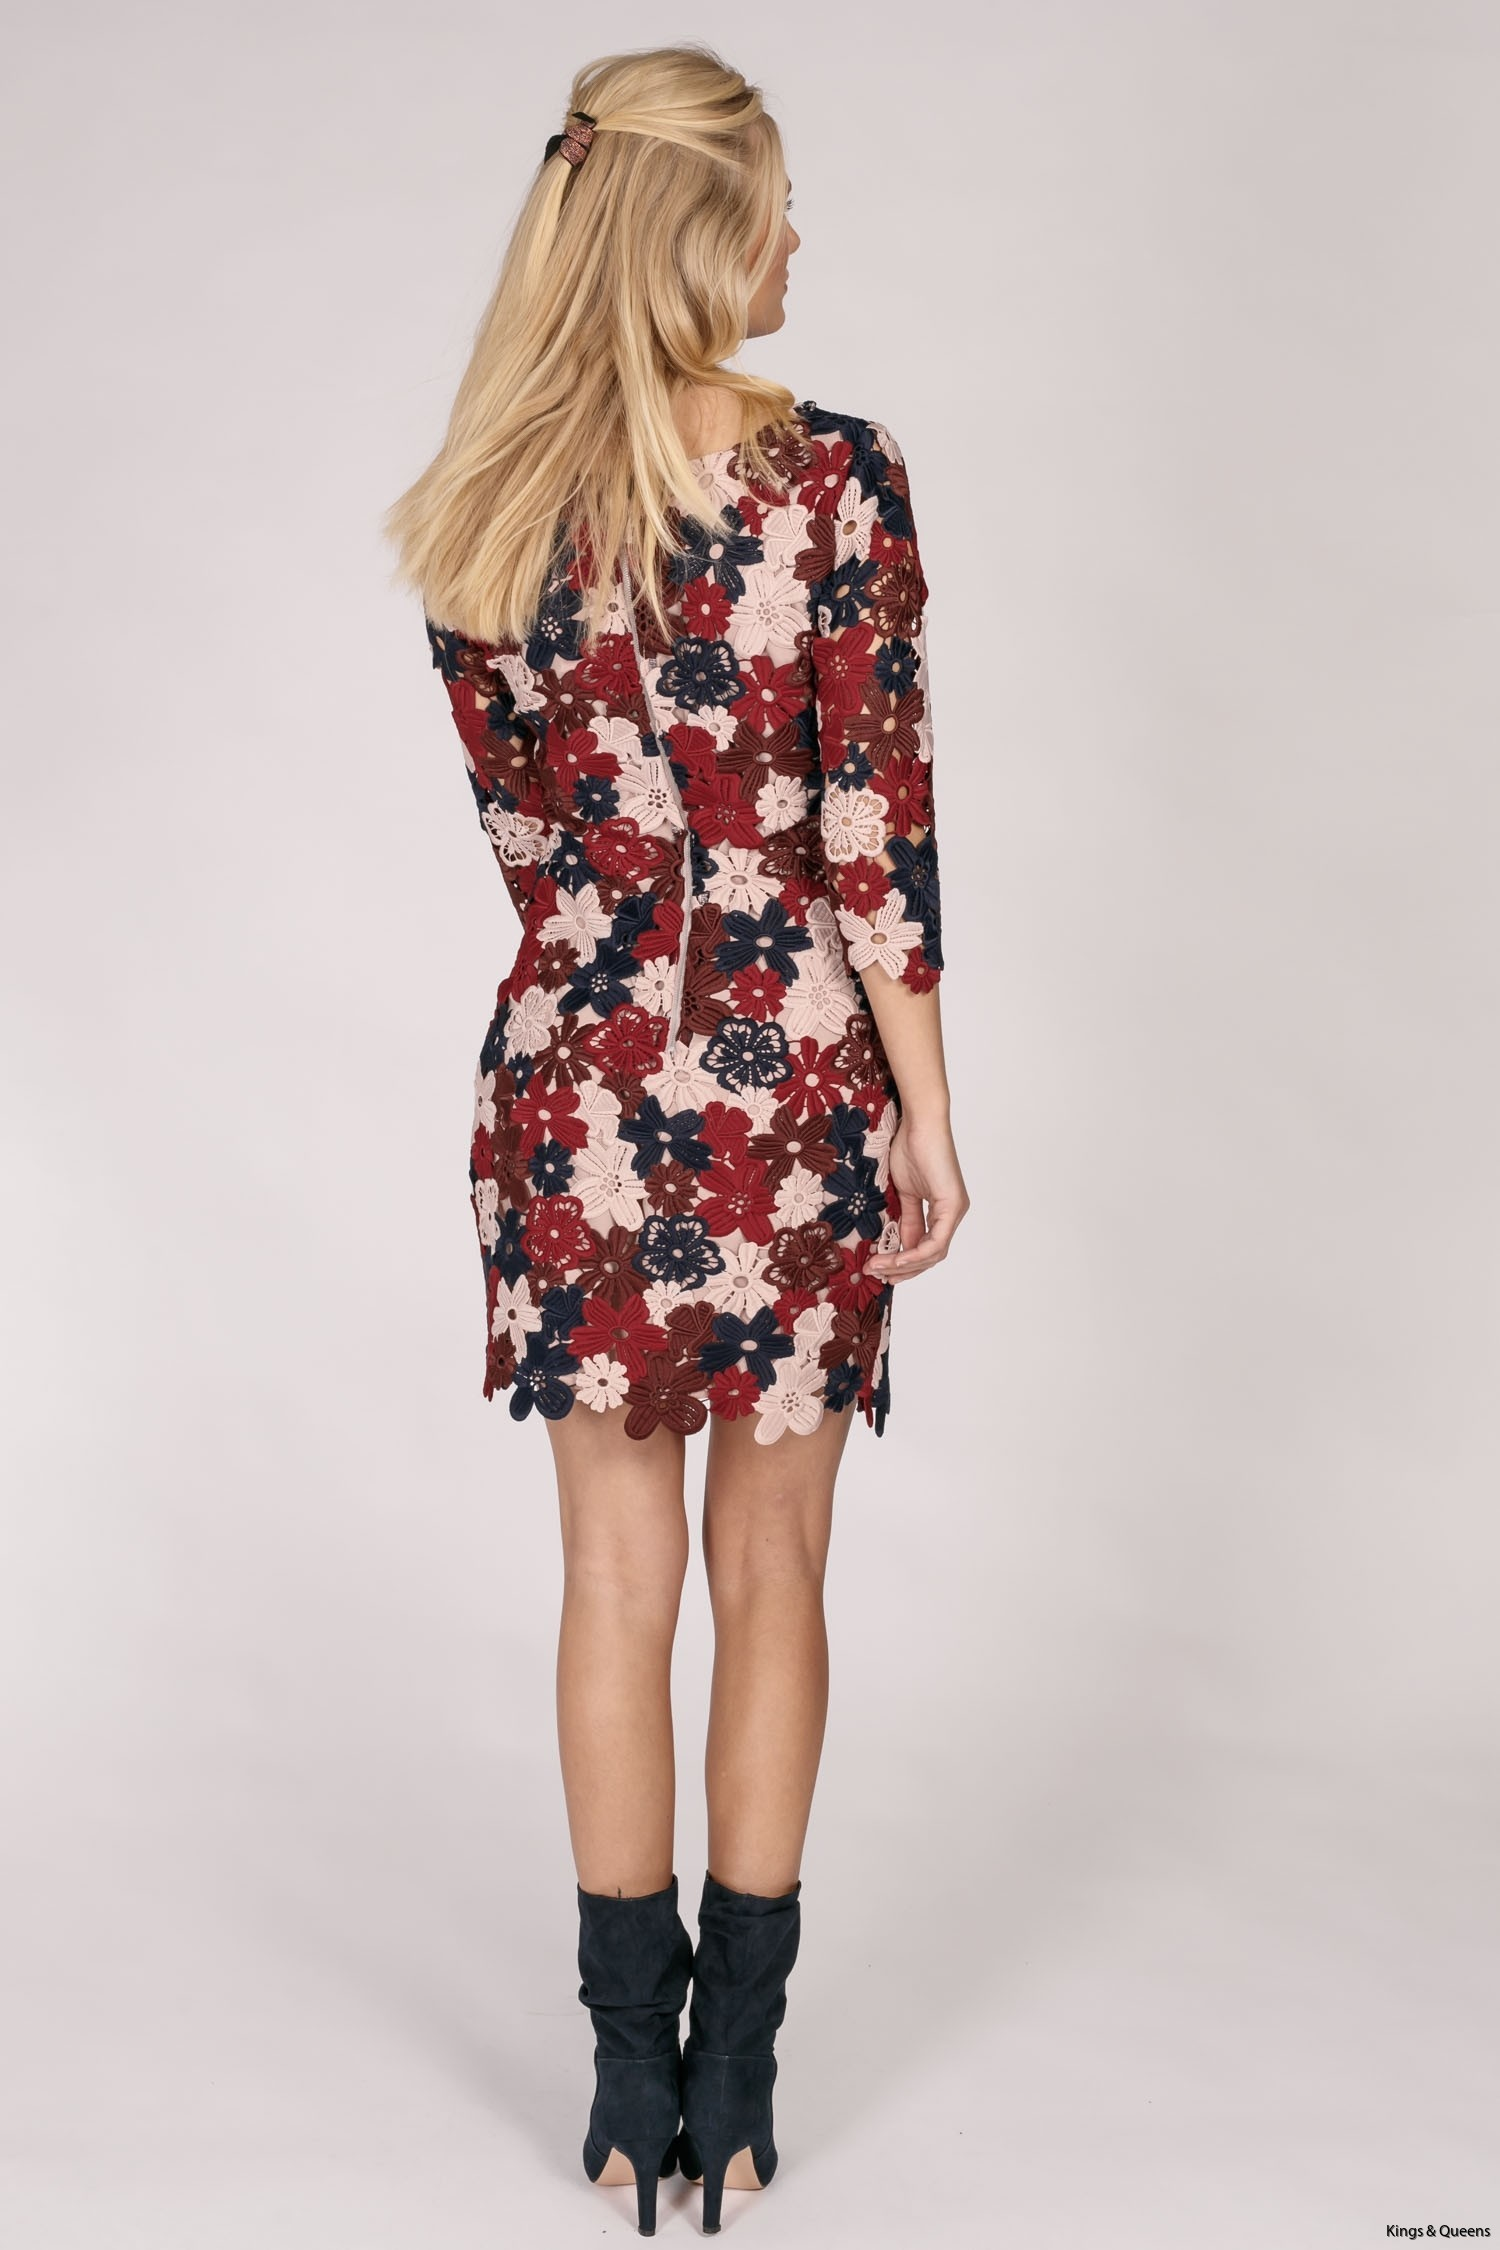 pw6425-lace_flower_dress_6_of_10_